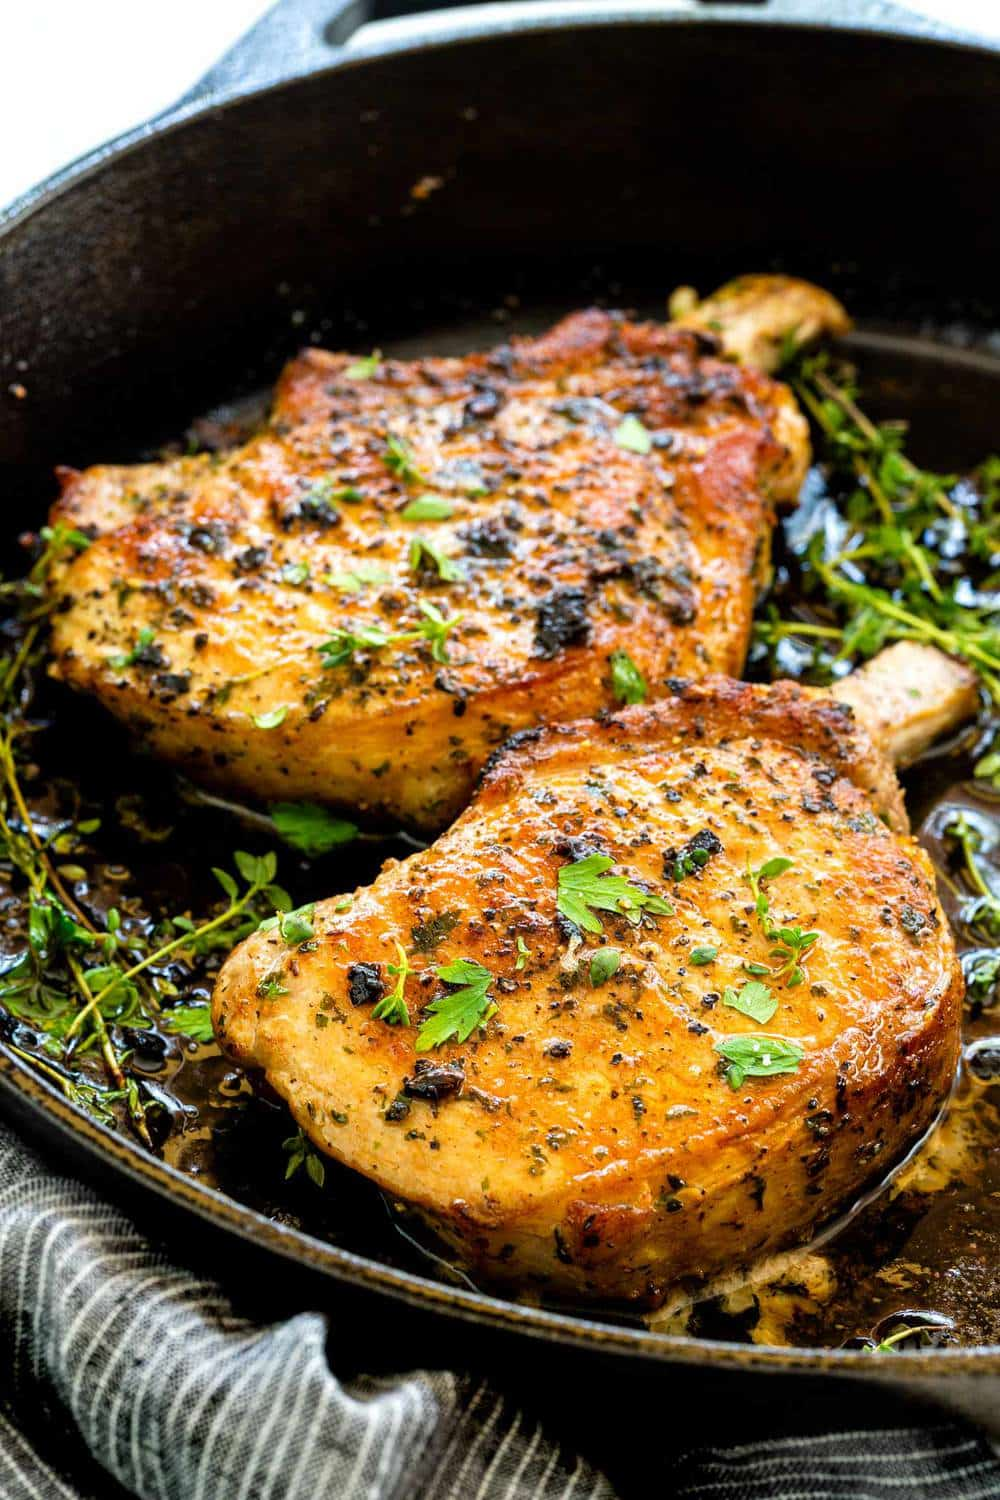 pork chops cooked in a cast iron skillet